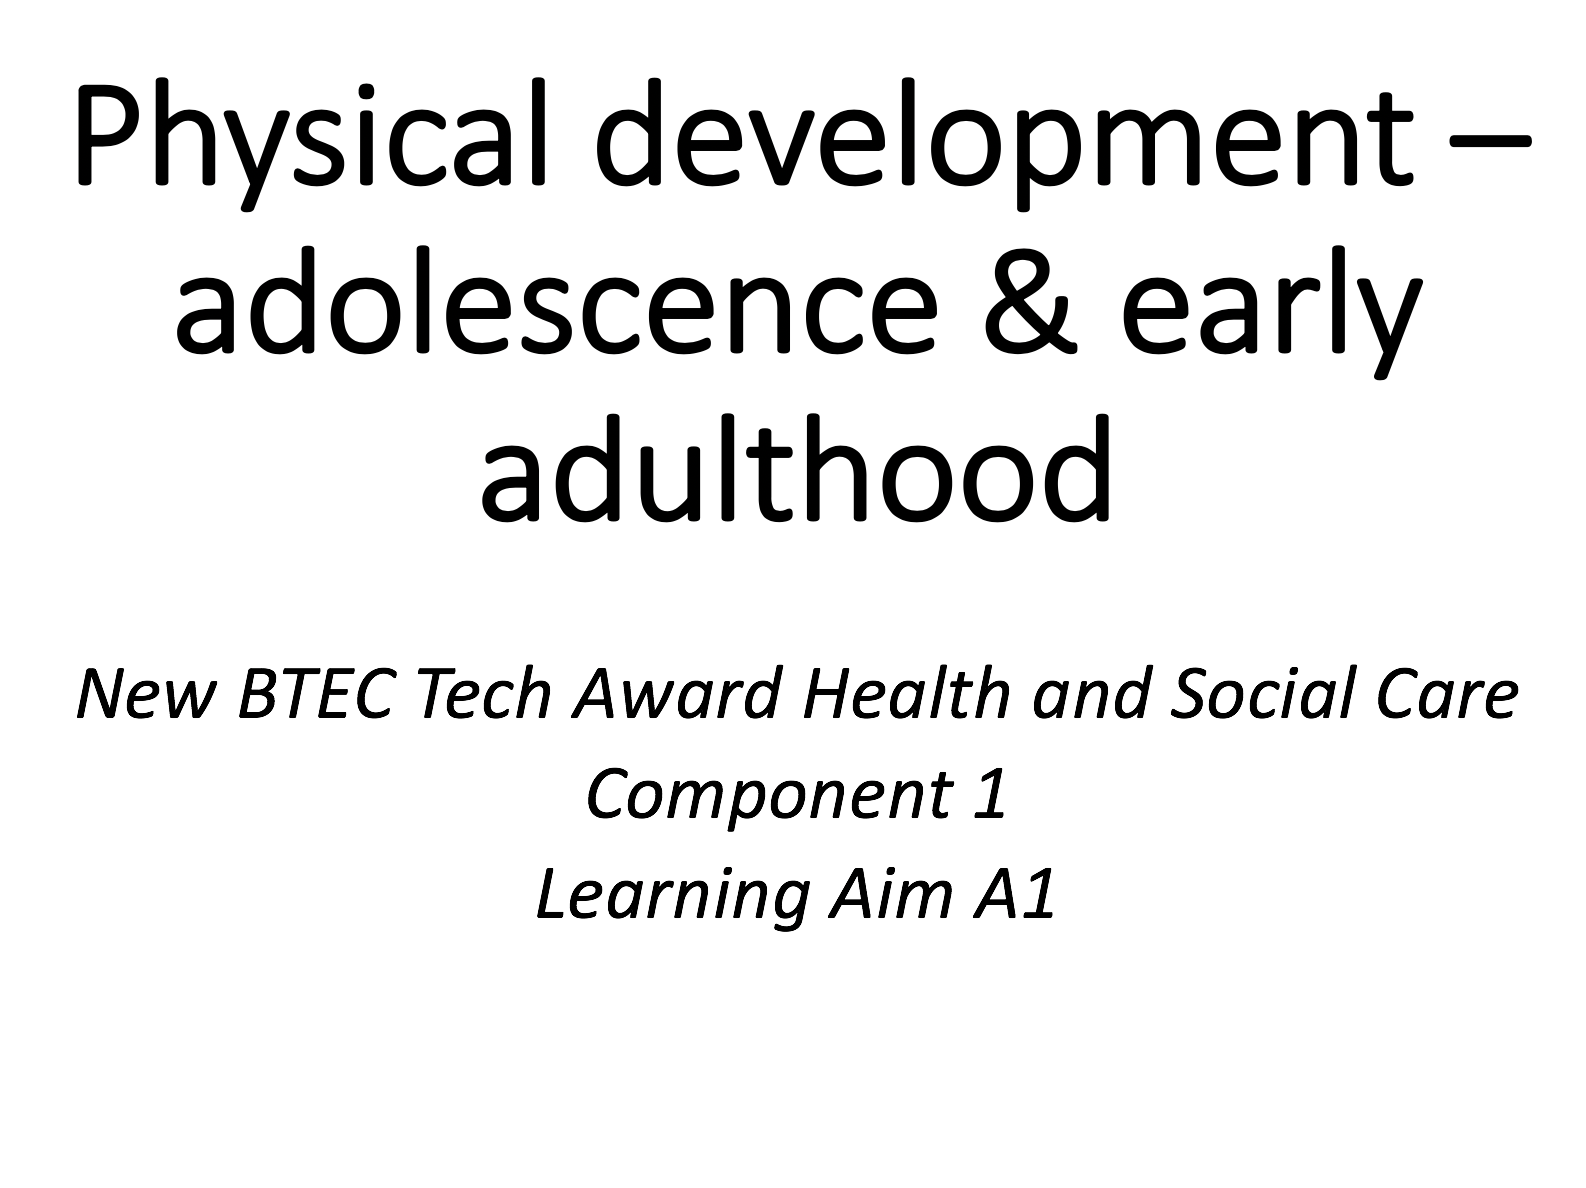 Physical development – adolescence & early adulthood